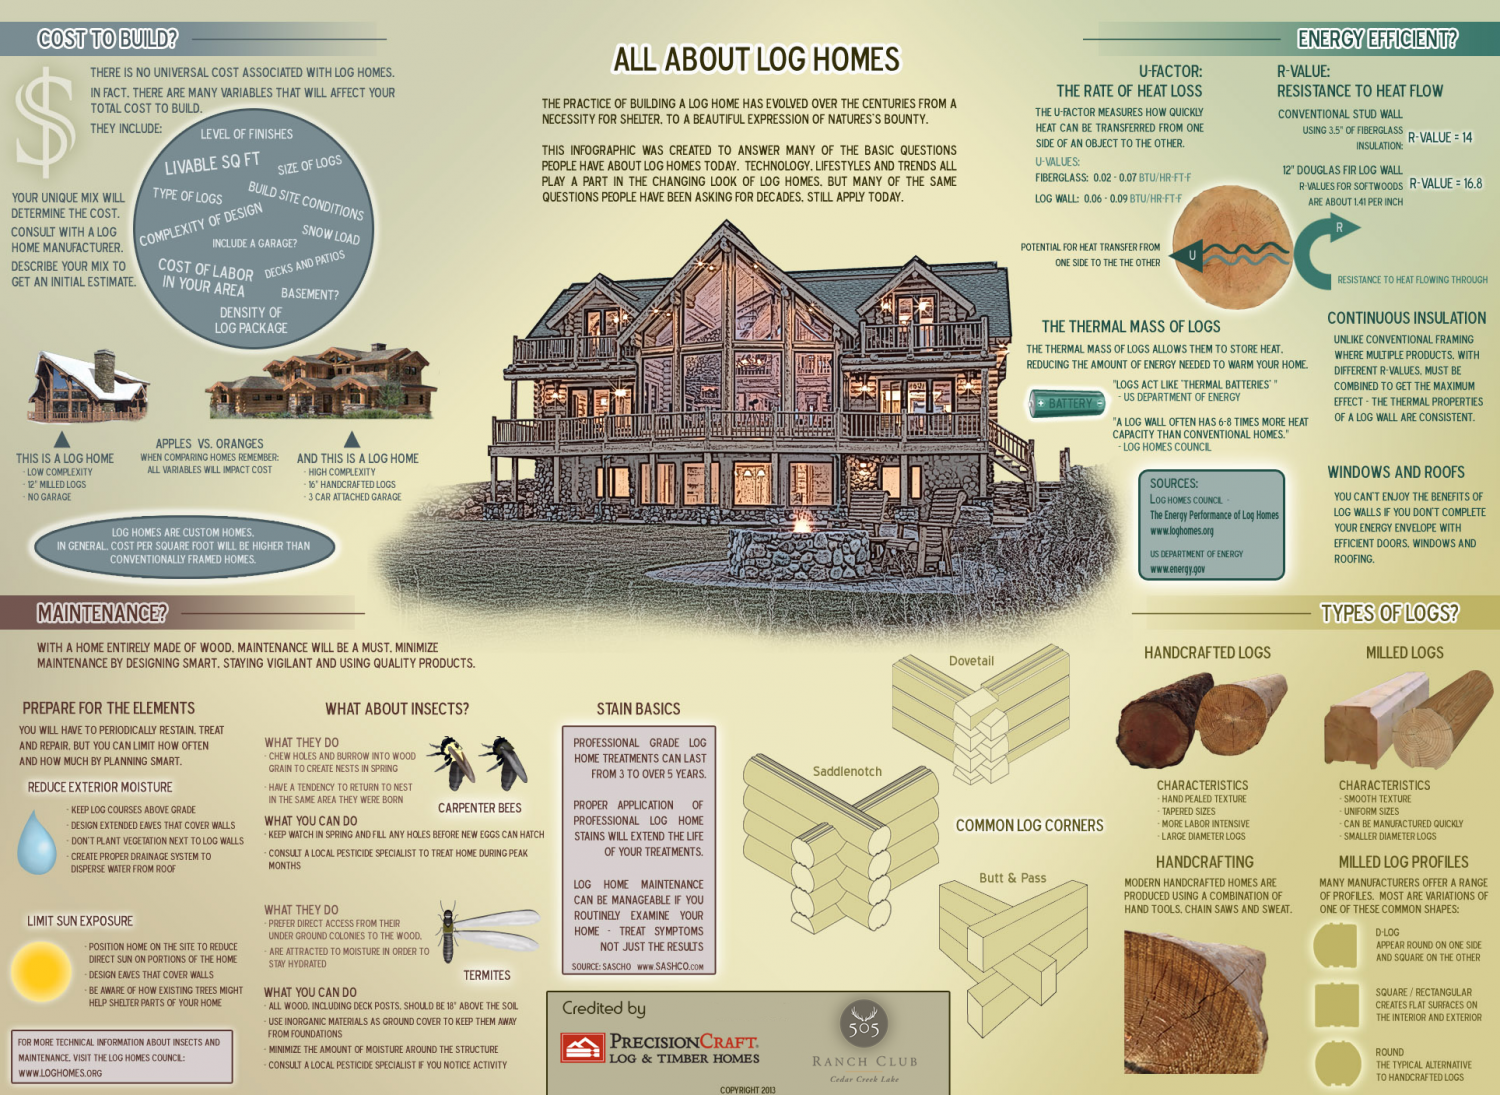 Luxury Shelter: The Practice of Building a Log Homes Infographic